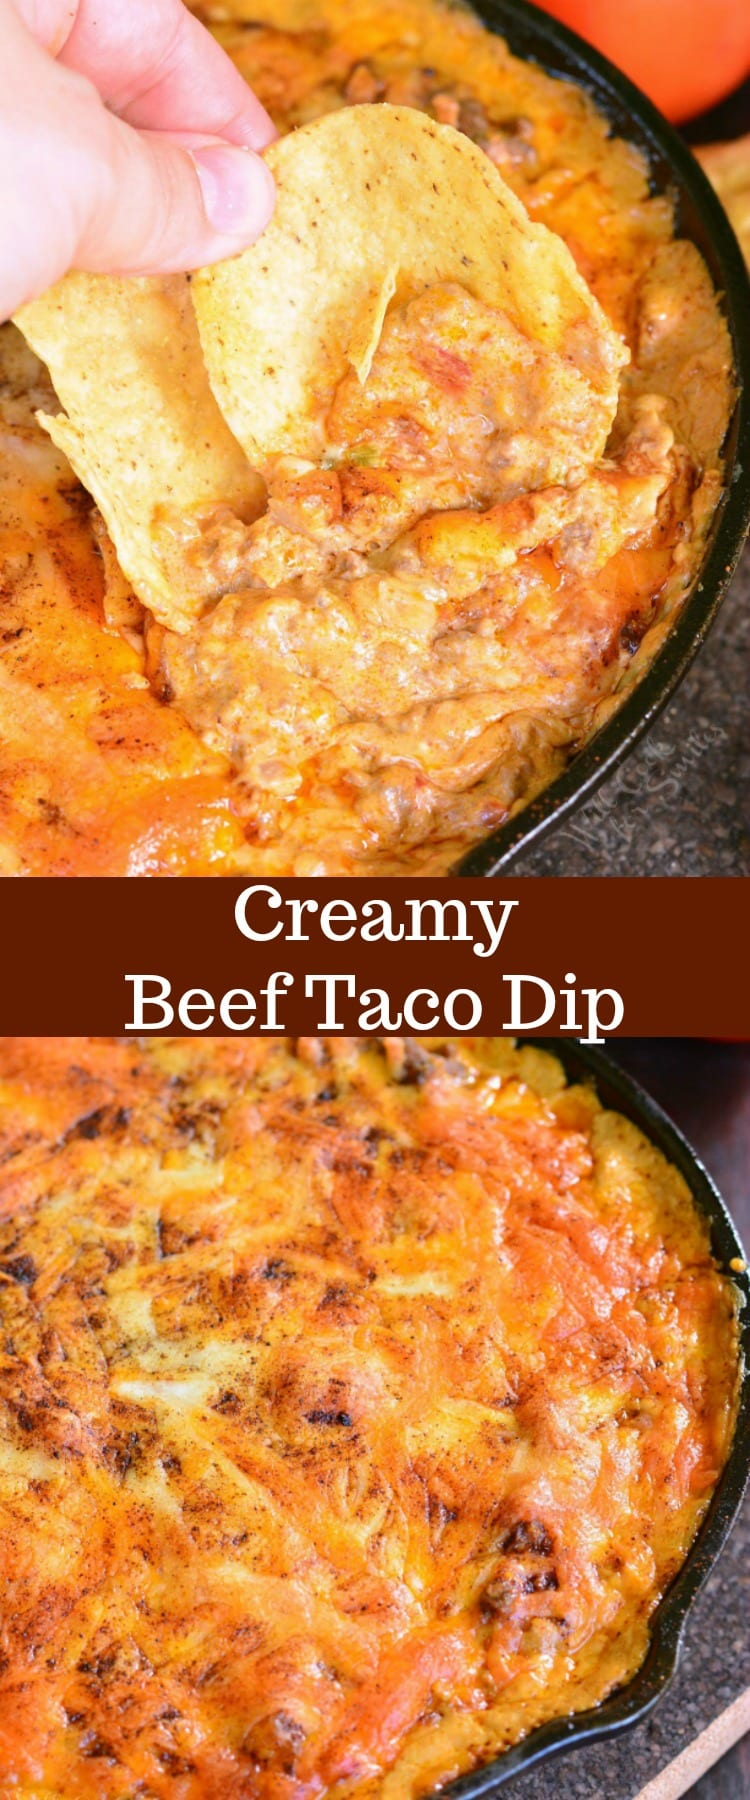 Creamy Beef Taco Dip collage